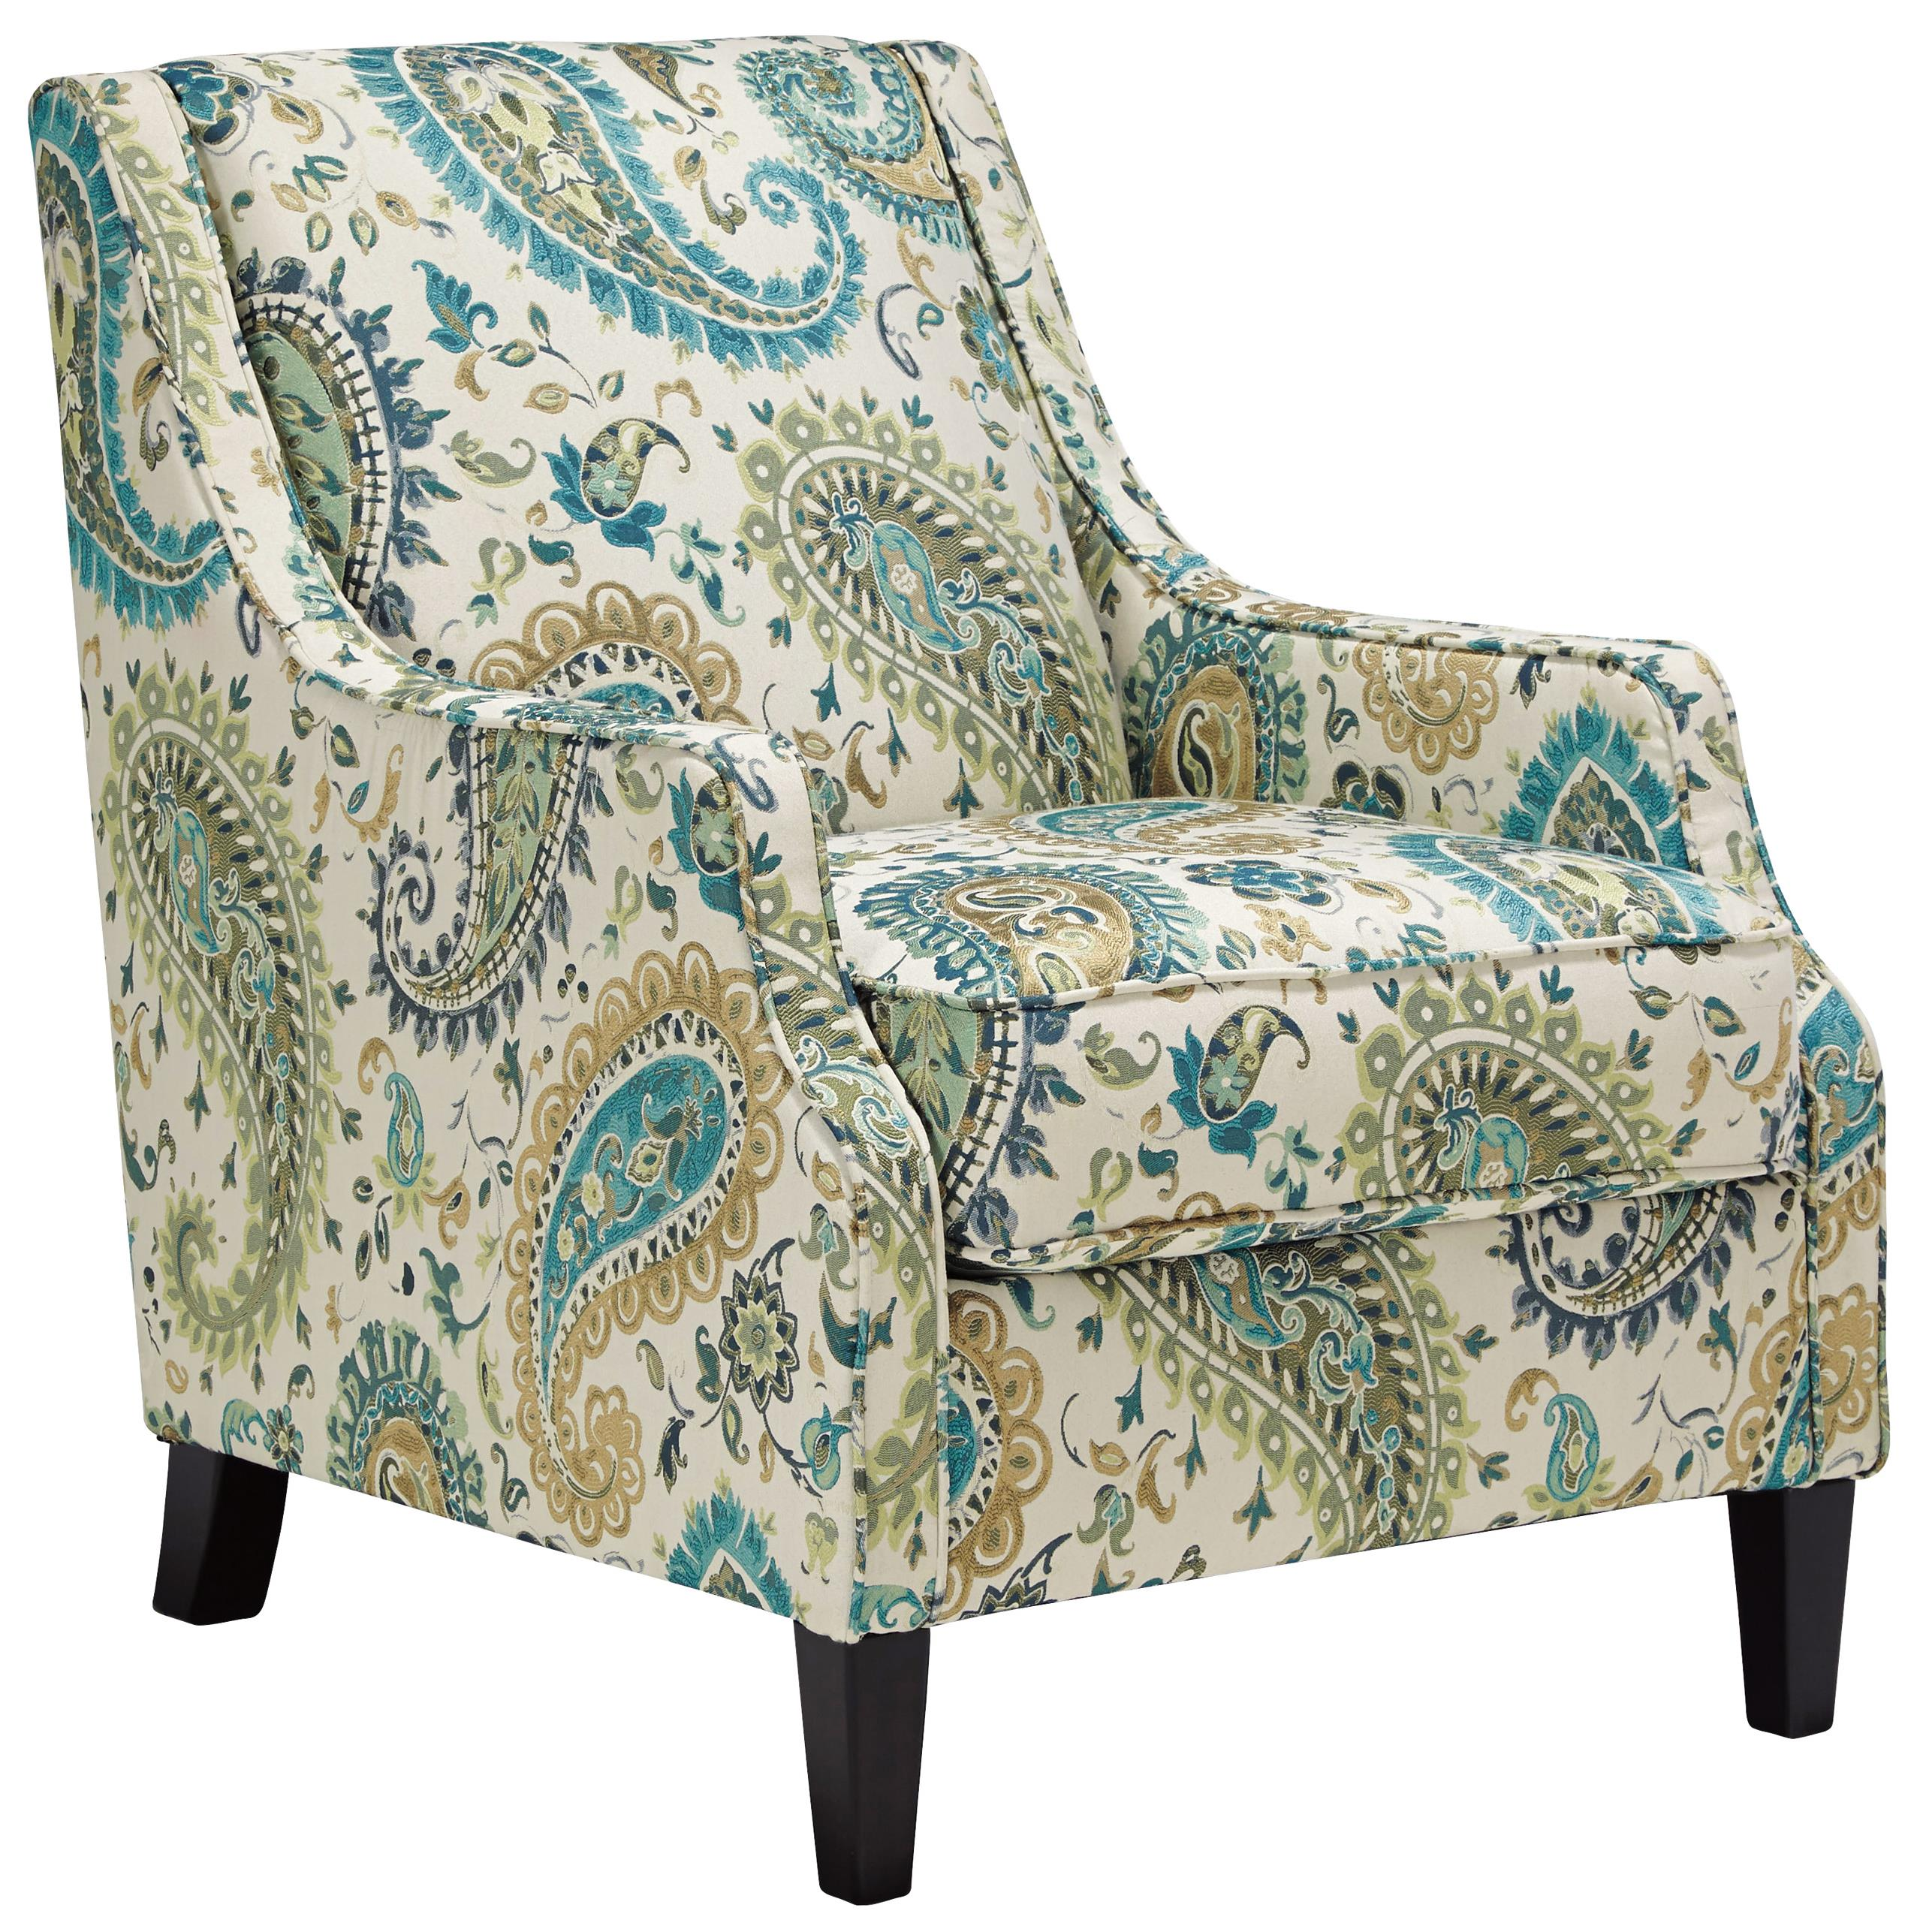 Benchcraft Lochian Transitional Accent Chair in Paisley Fabric